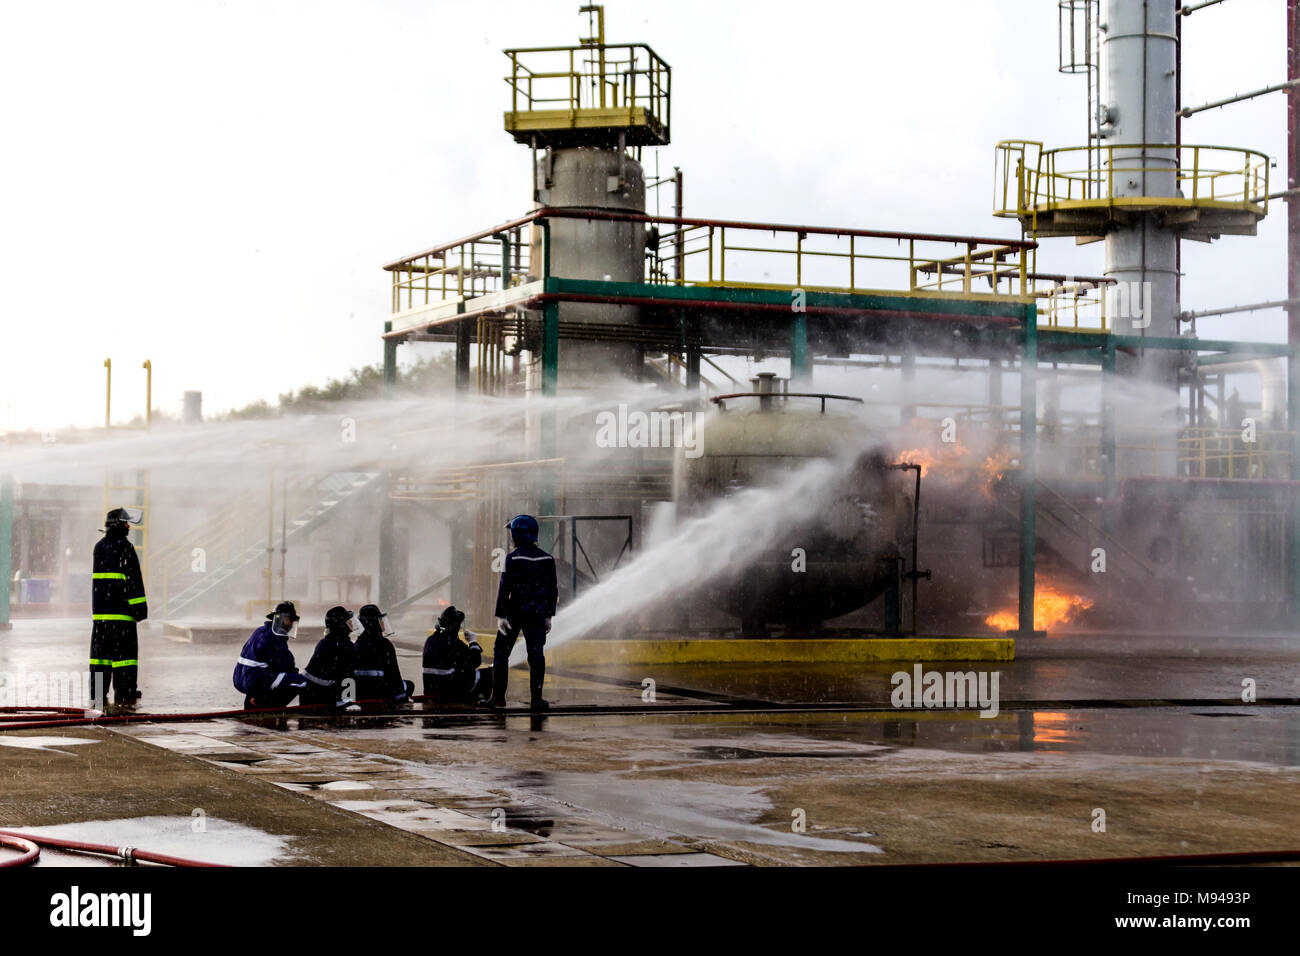 Firemen using water from hose for fire fighting at firefight training of insurance group. Firefighter wearing a fire suit for safety under the danger  - Stock Image